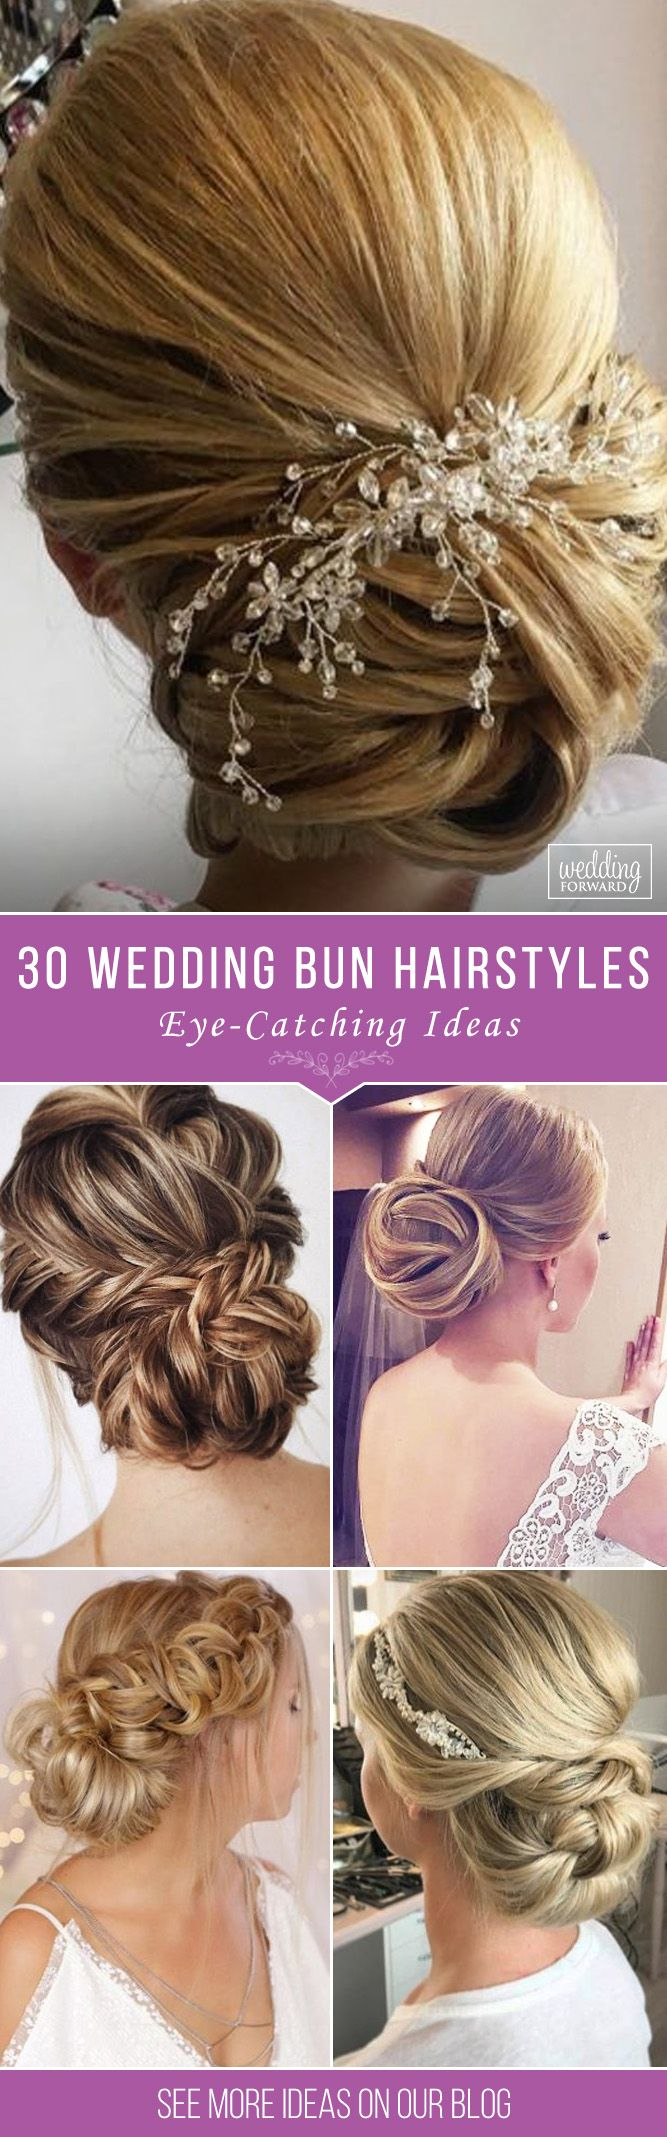 30 Eye-Catching Wedding Bun Hairstyles ❤ Bun hairstyles are the most popular w...